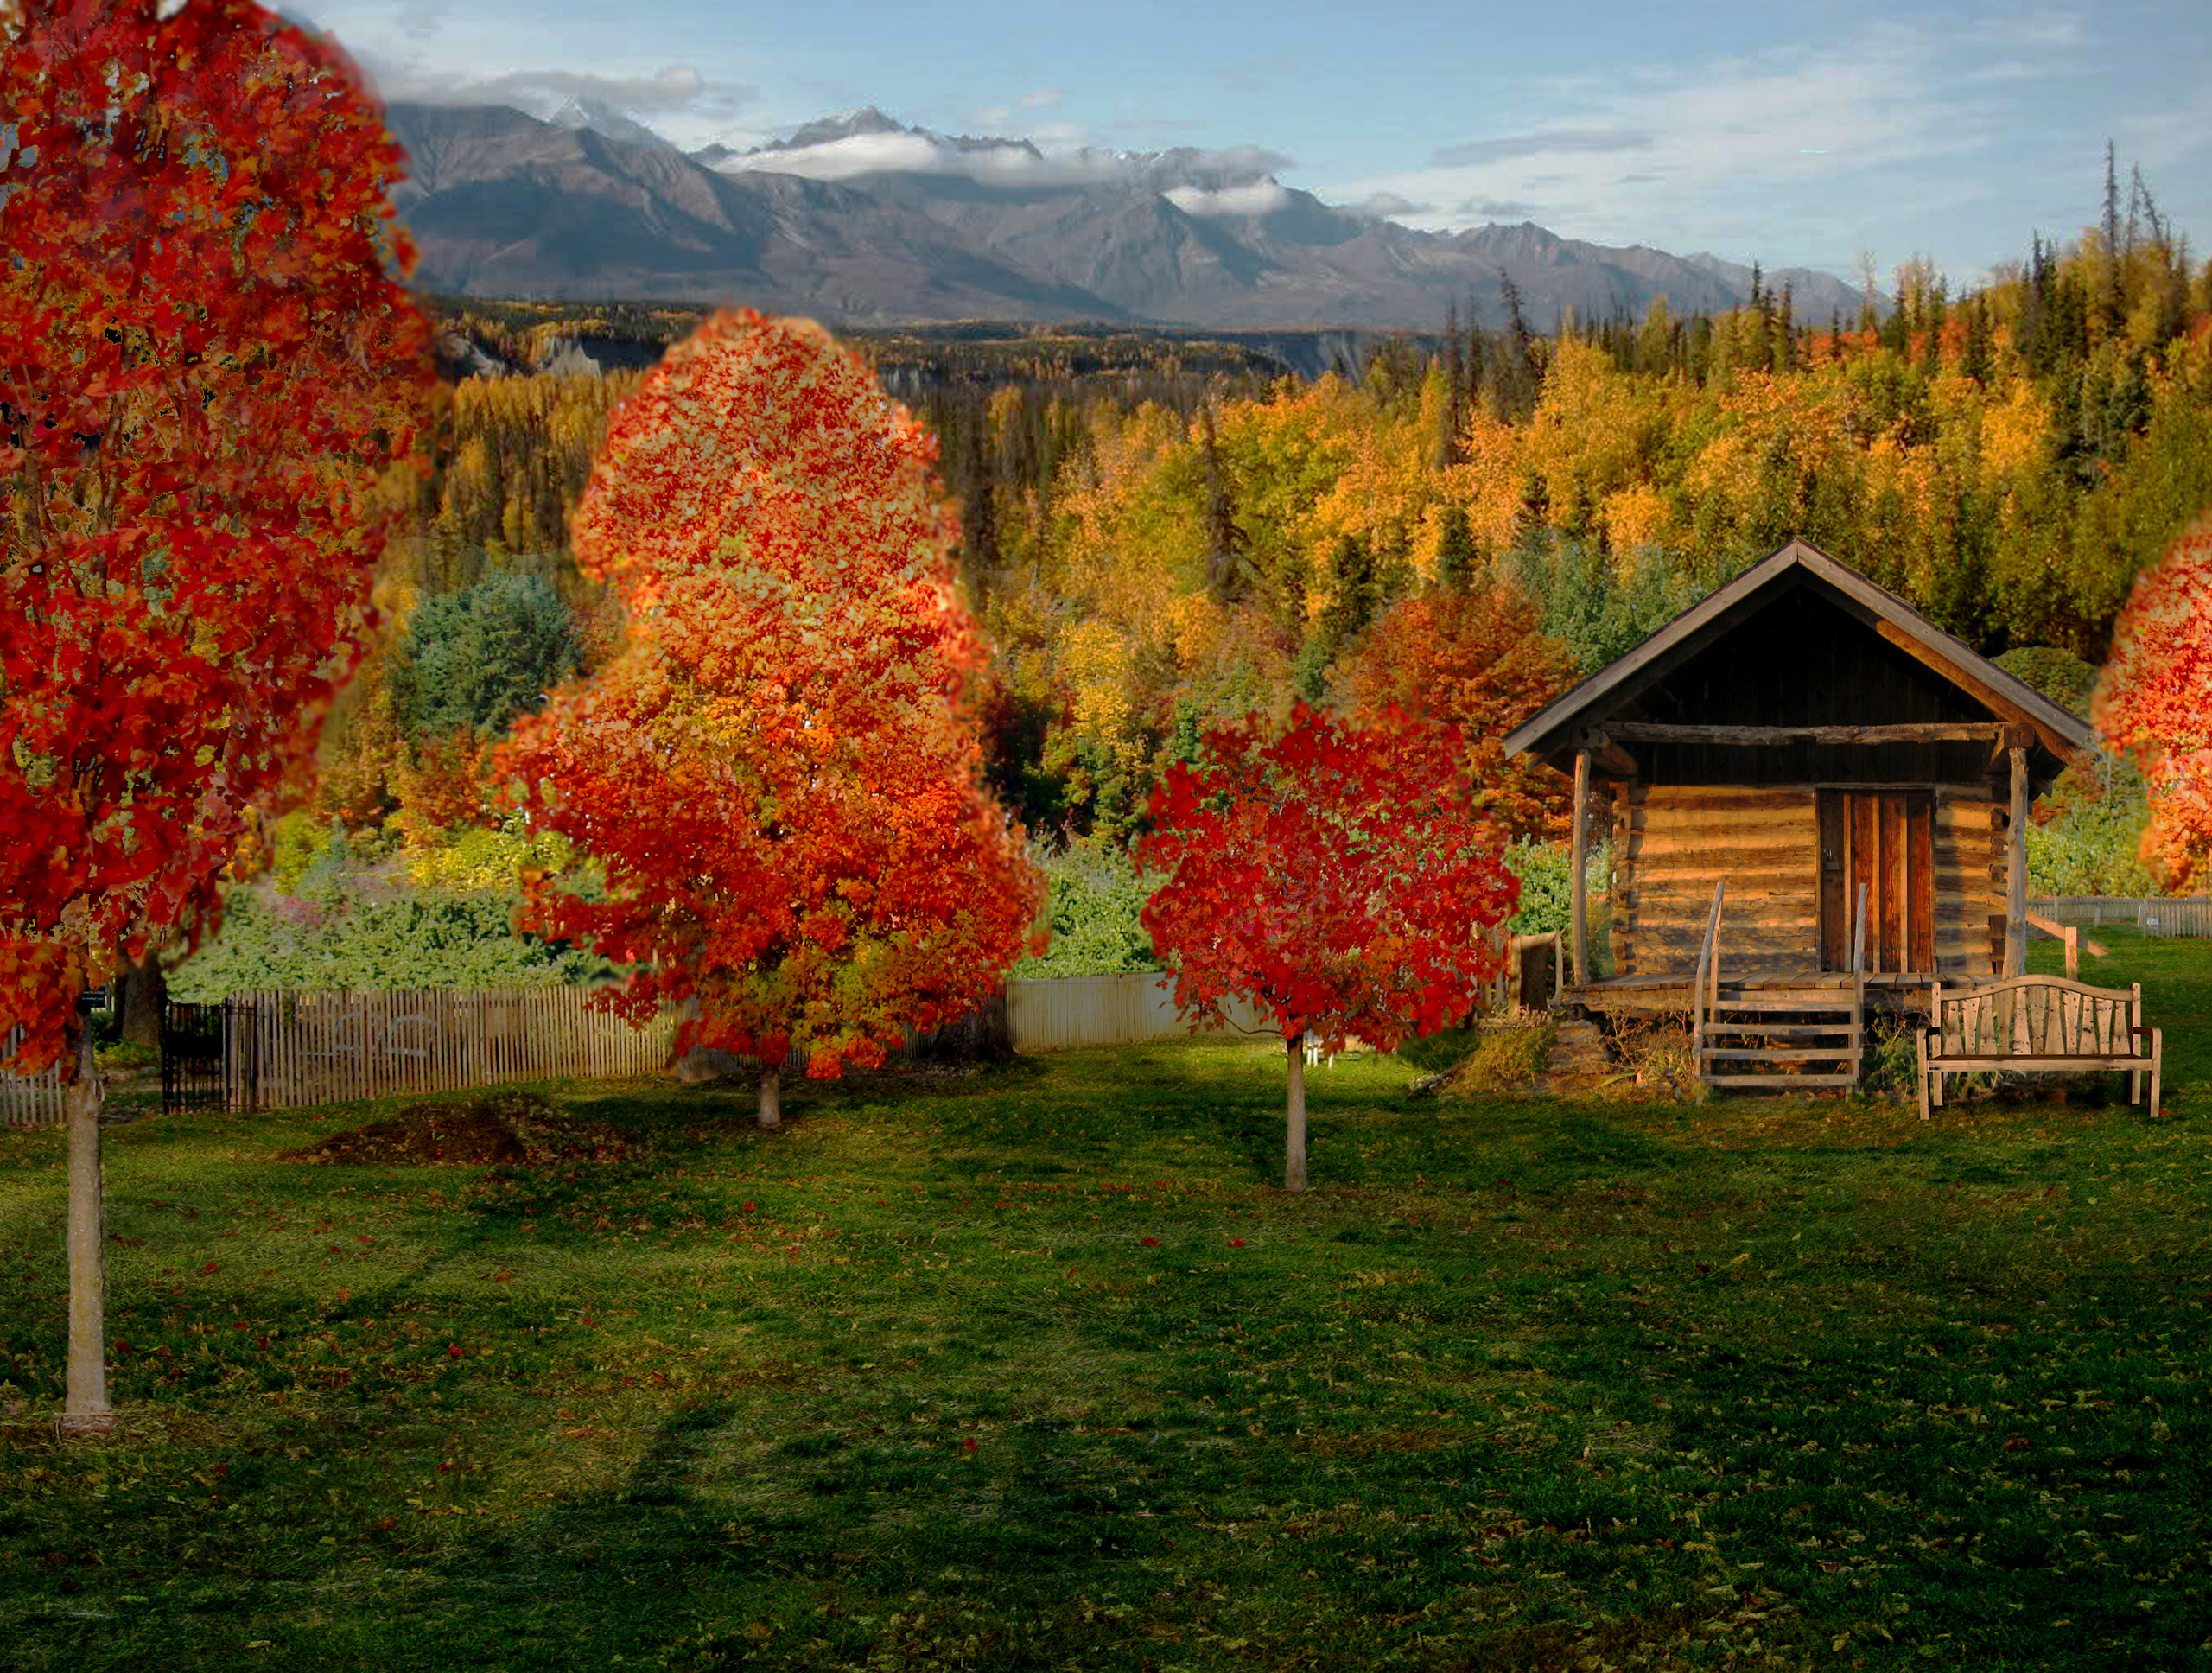 autumn cabin wallpaper desktop - photo #11